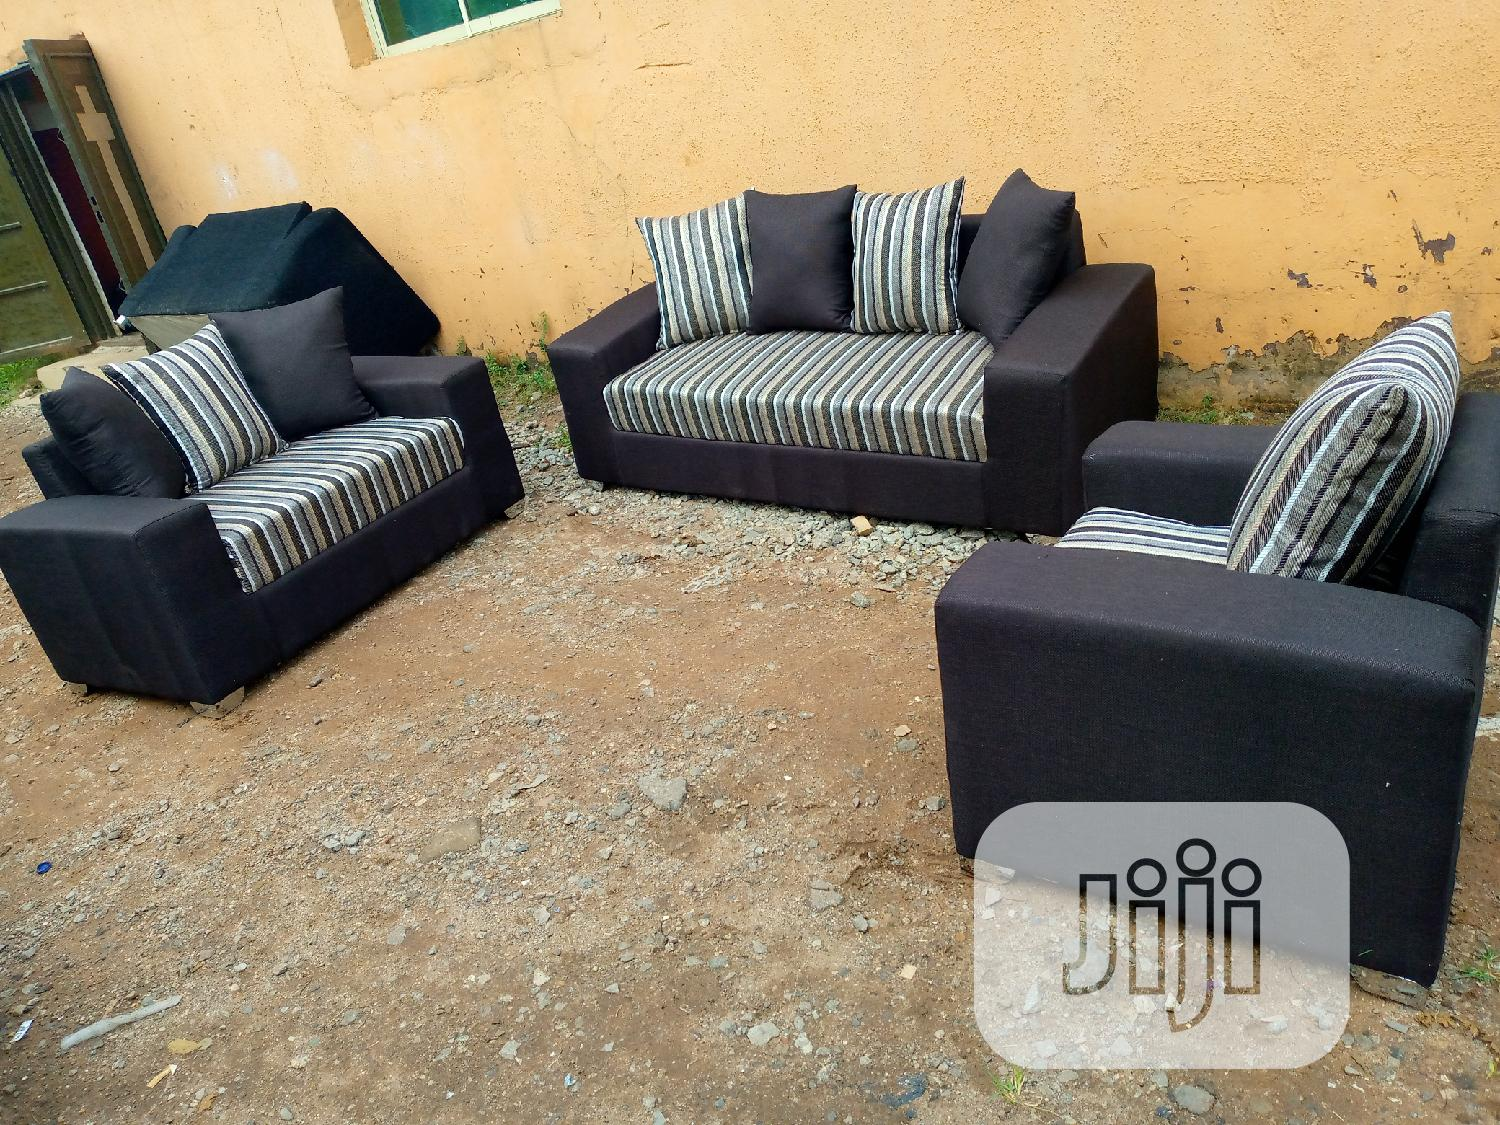 Archive: 6 Seaters Sofa Chairs With Pillows. Fabrics Couches